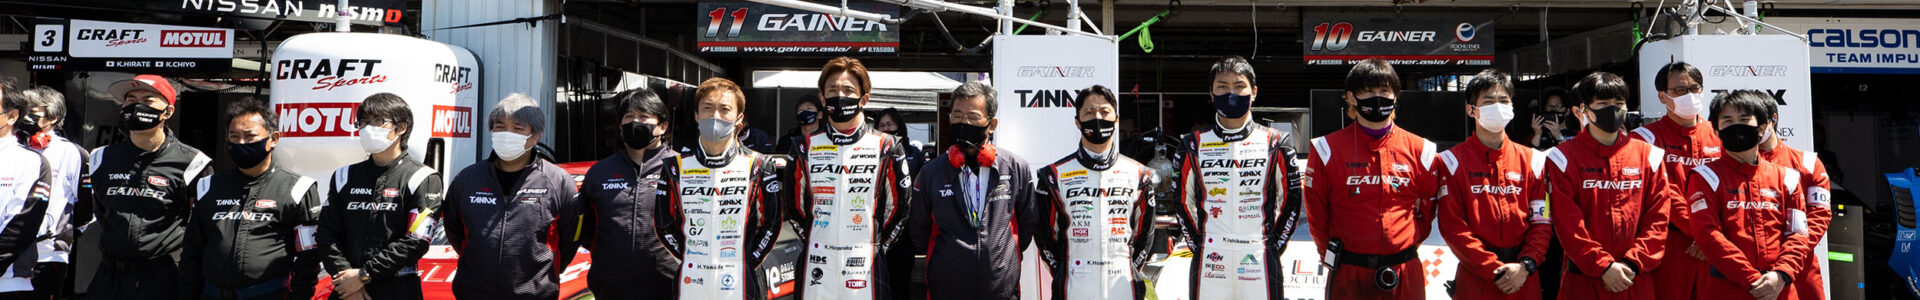 GAINER TANAX ITOCHU ENEX  with IMPUL GT−R 星野一樹